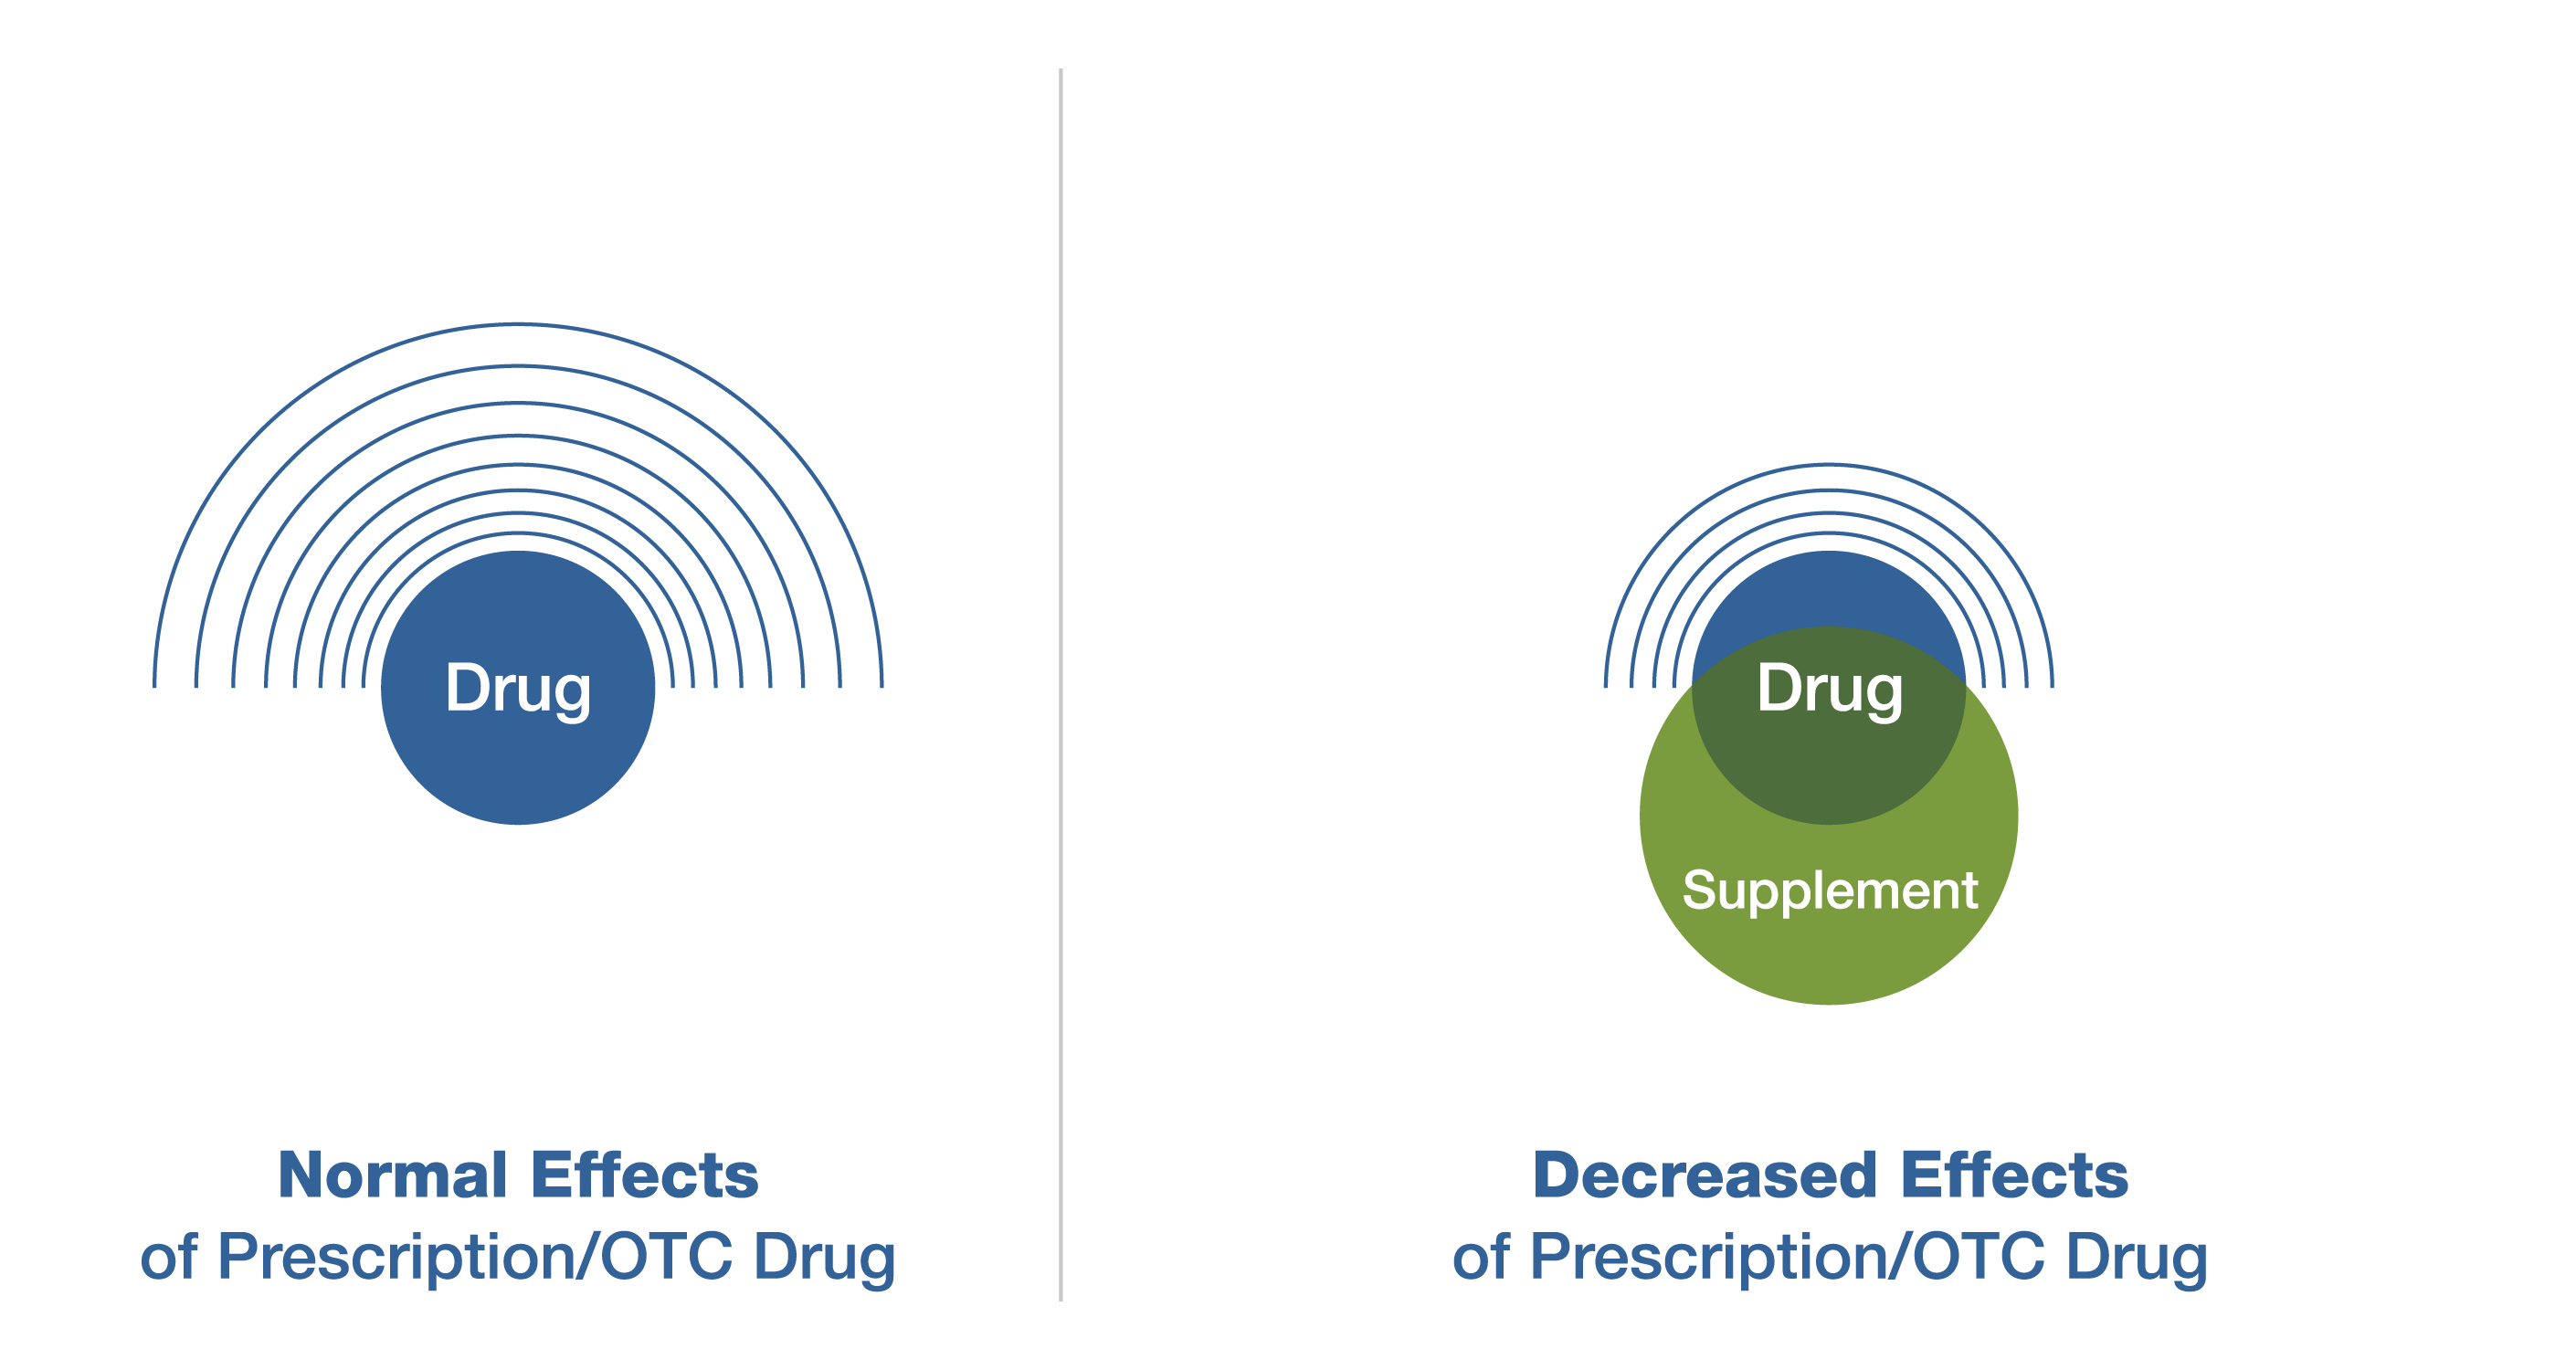 Drug + Supplement = The drug is less effective than it should be